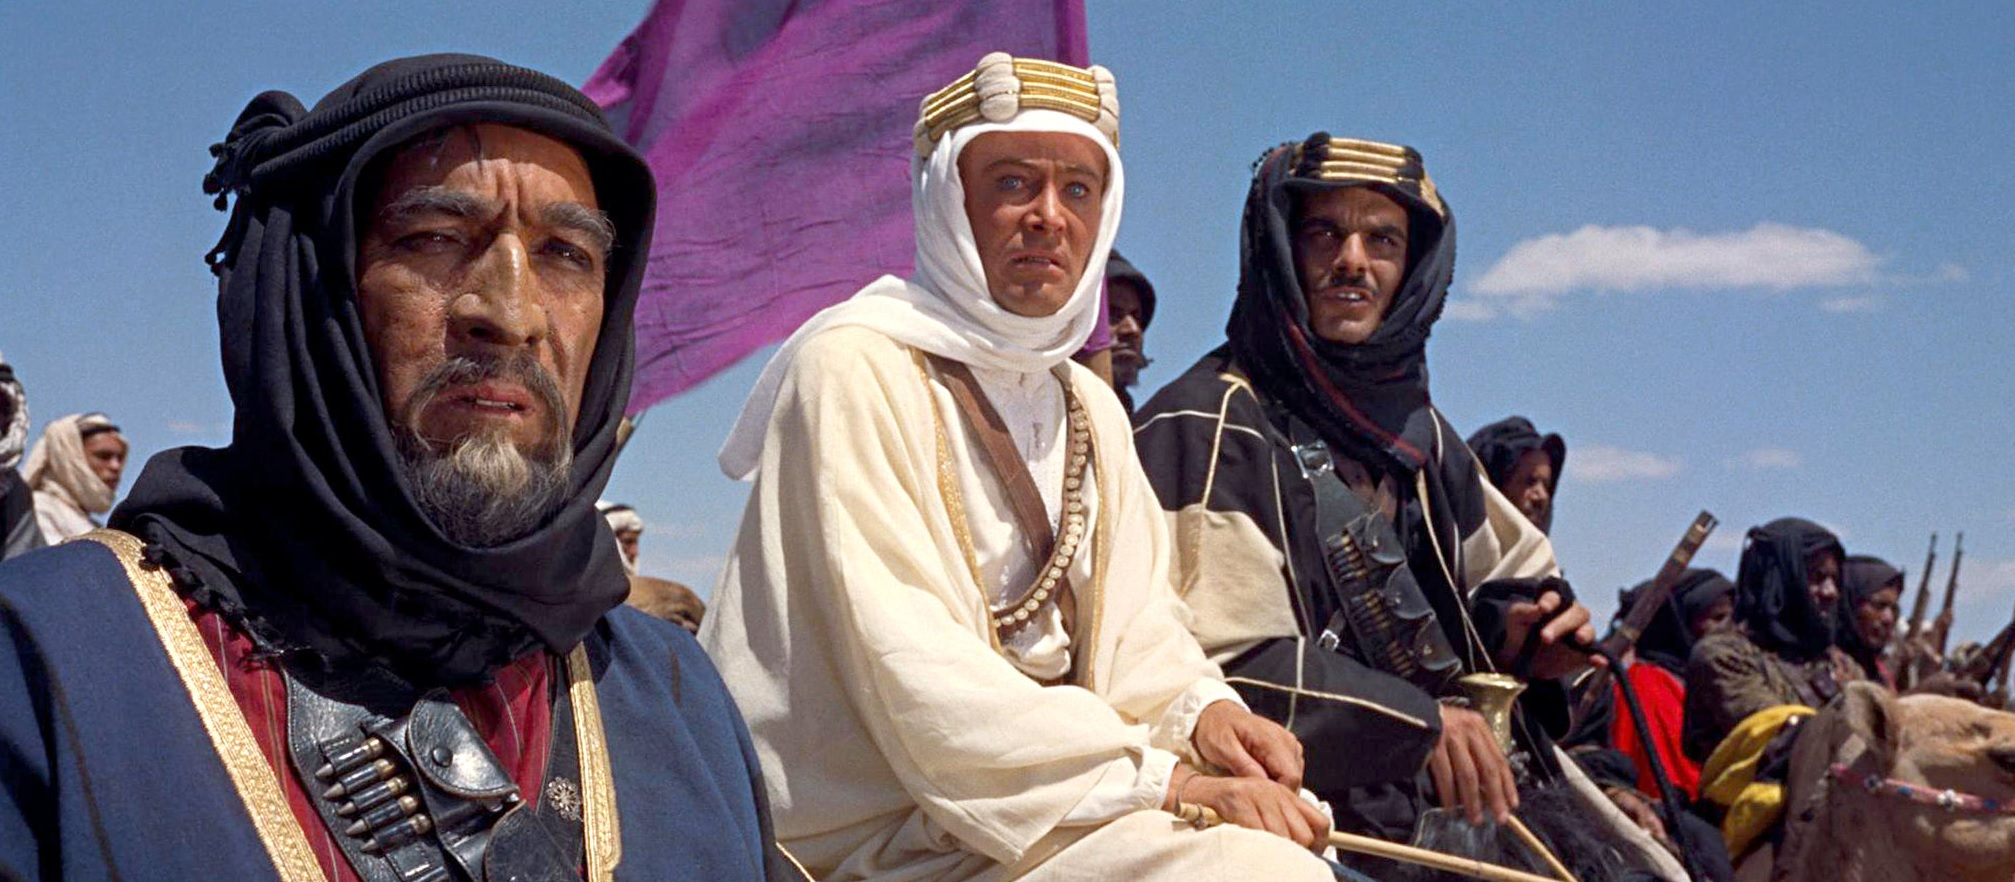 https://greatwarfilms.files.wordpress.com/2015/07/lawrence-of-arabia-2.jpg